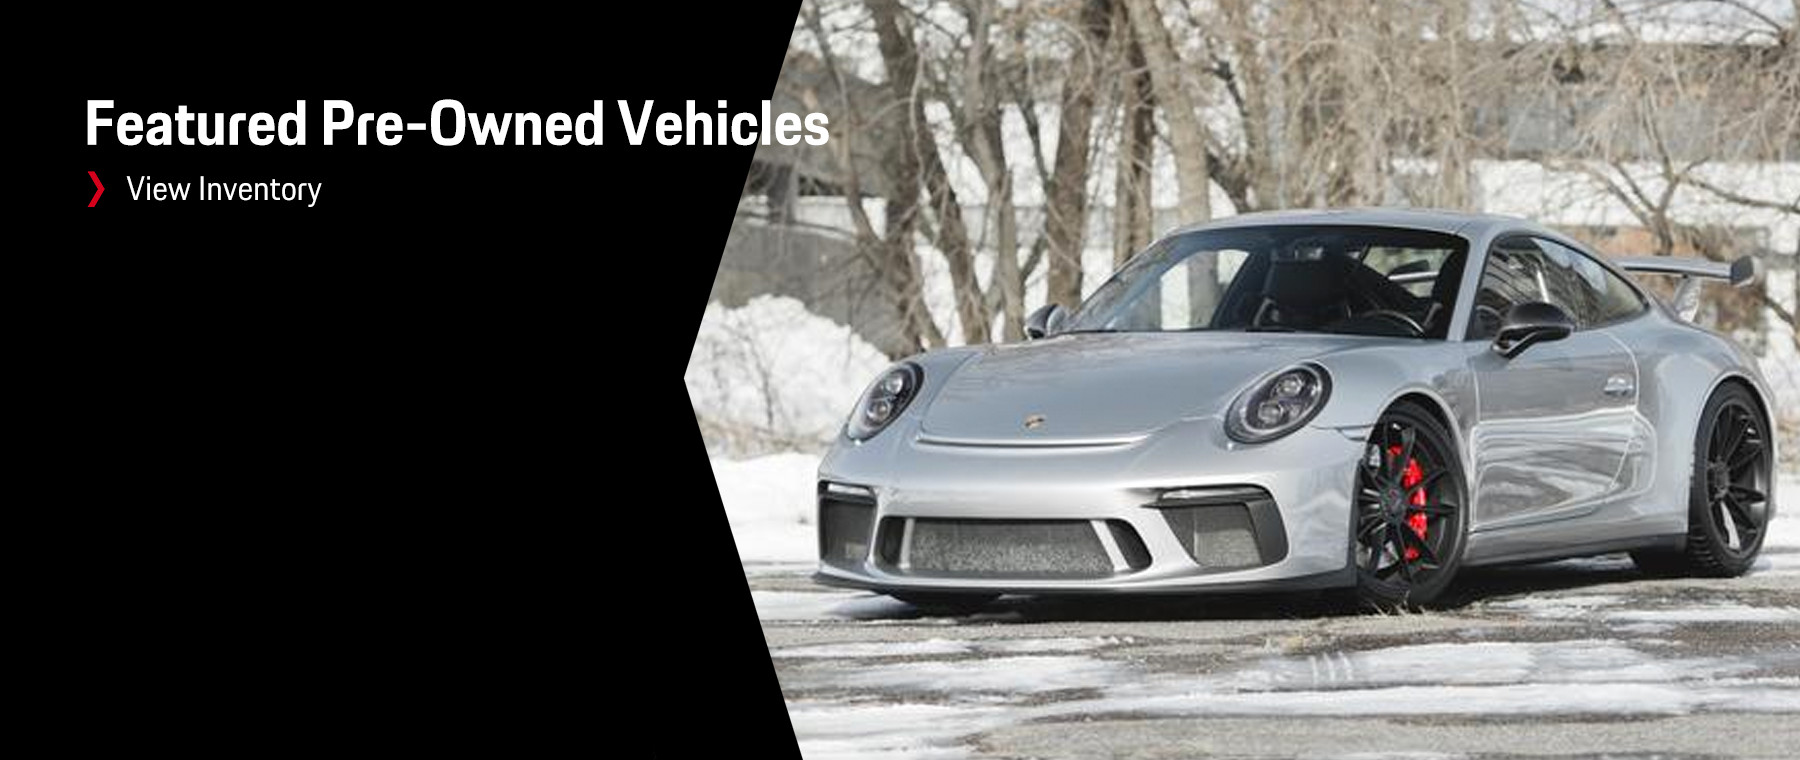 Porsche Featured Vehicles